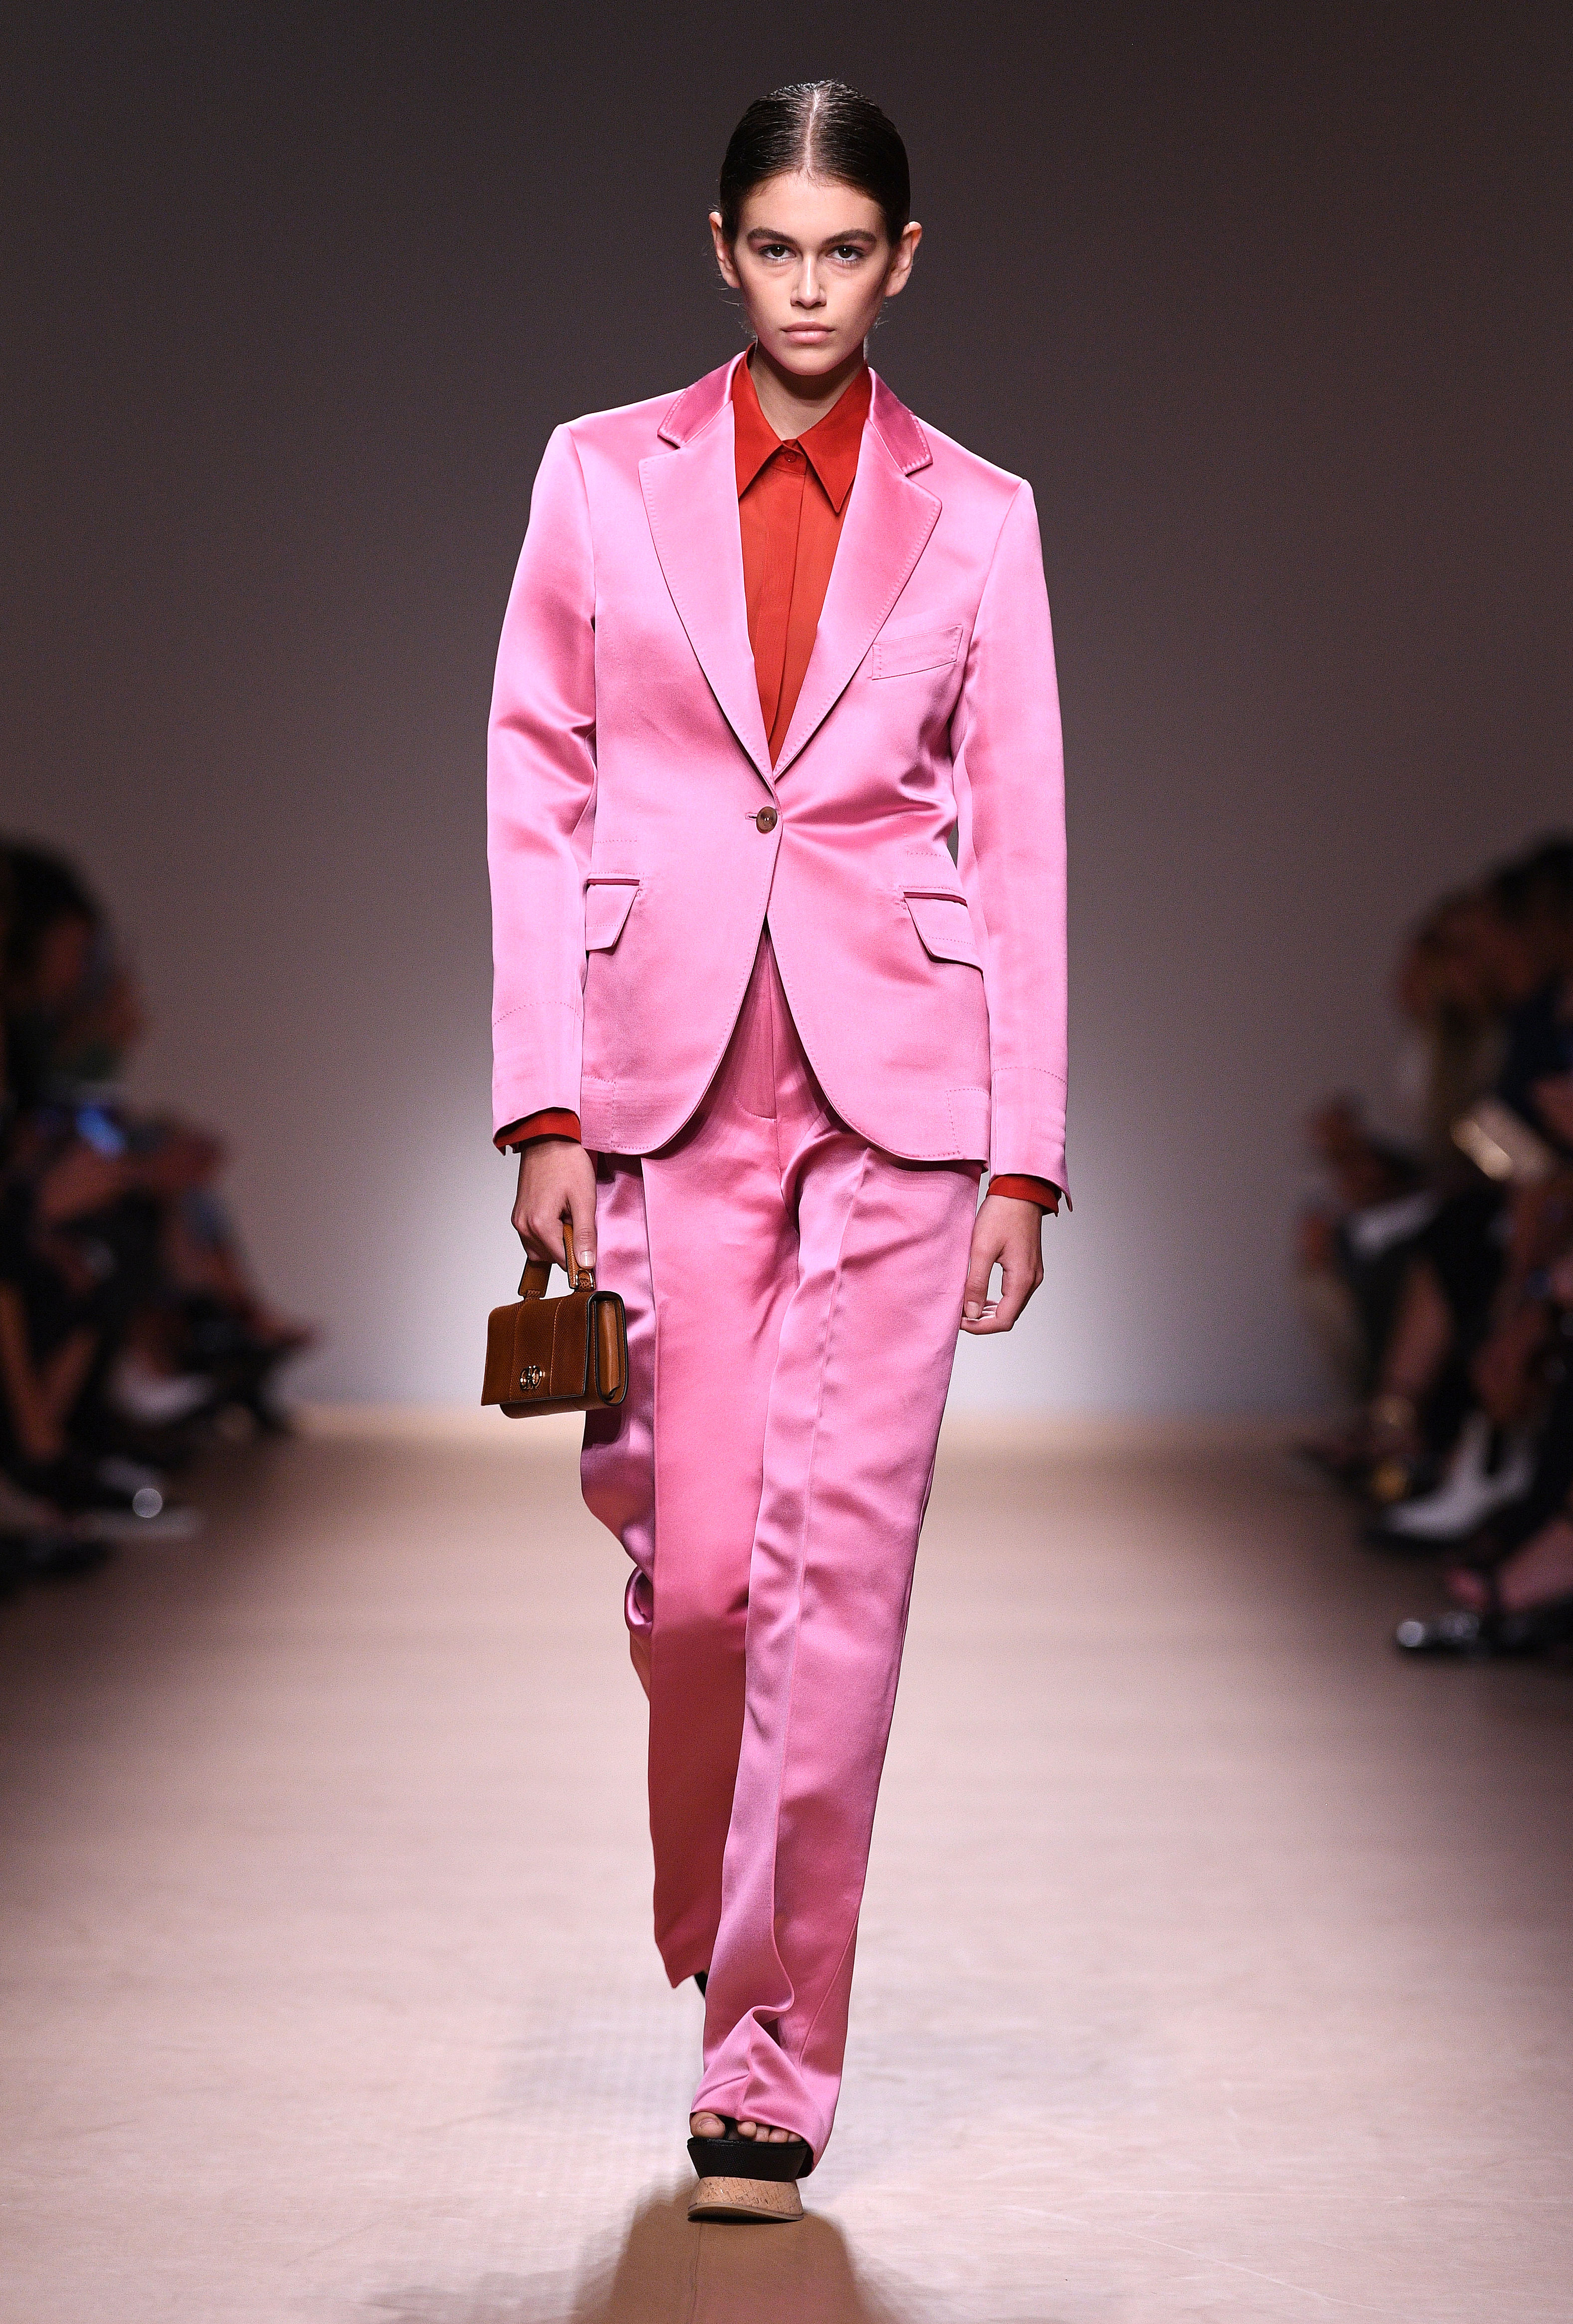 Kaia Gerber - The model worked the Spring-Summer 2019 Salvatore Ferragamo runway in a hot pink suit and a red button-down during Milan Fashion Week.